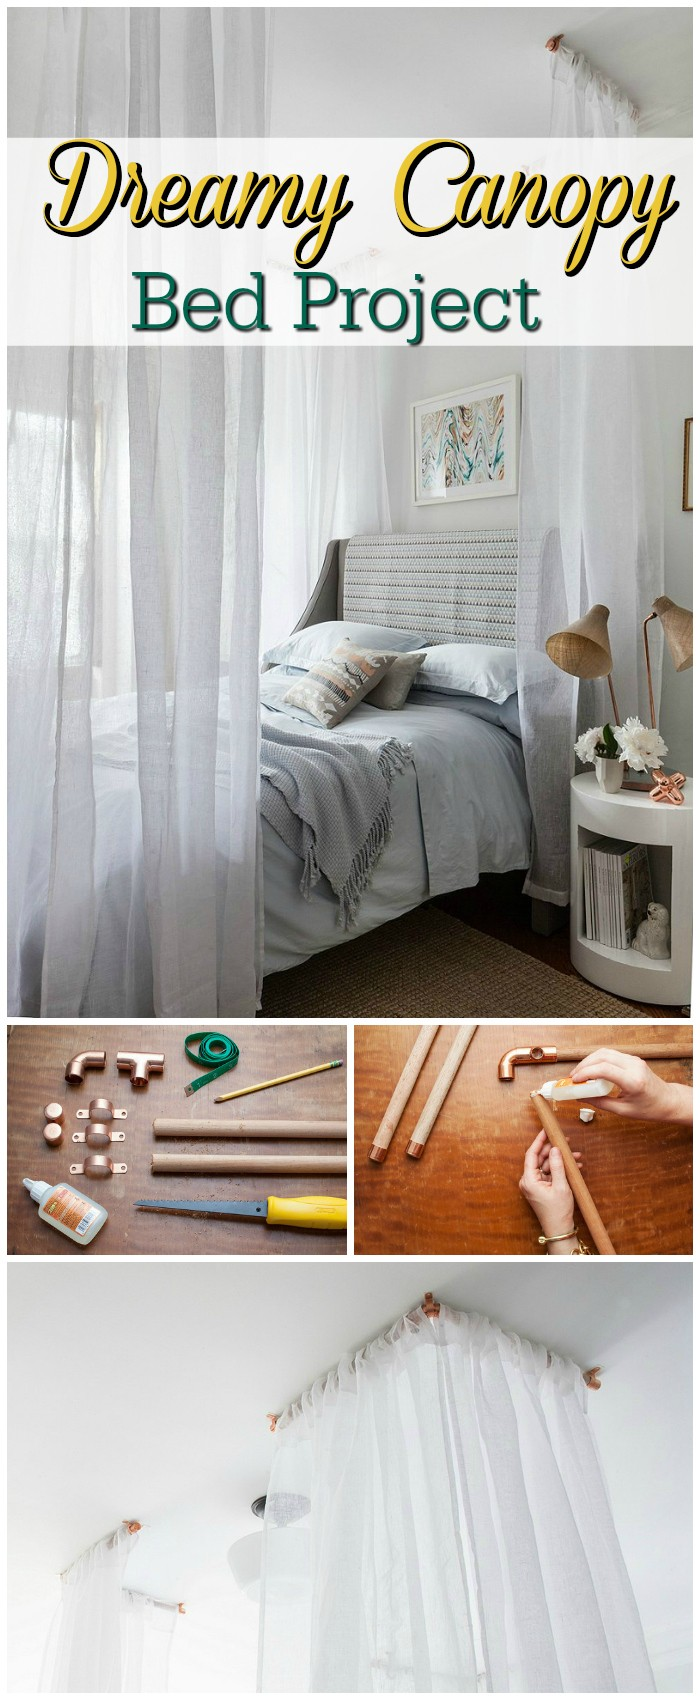 DIY Bed Canopy Ideas Without Spending A Lot Dreamy Canopy Bed Project